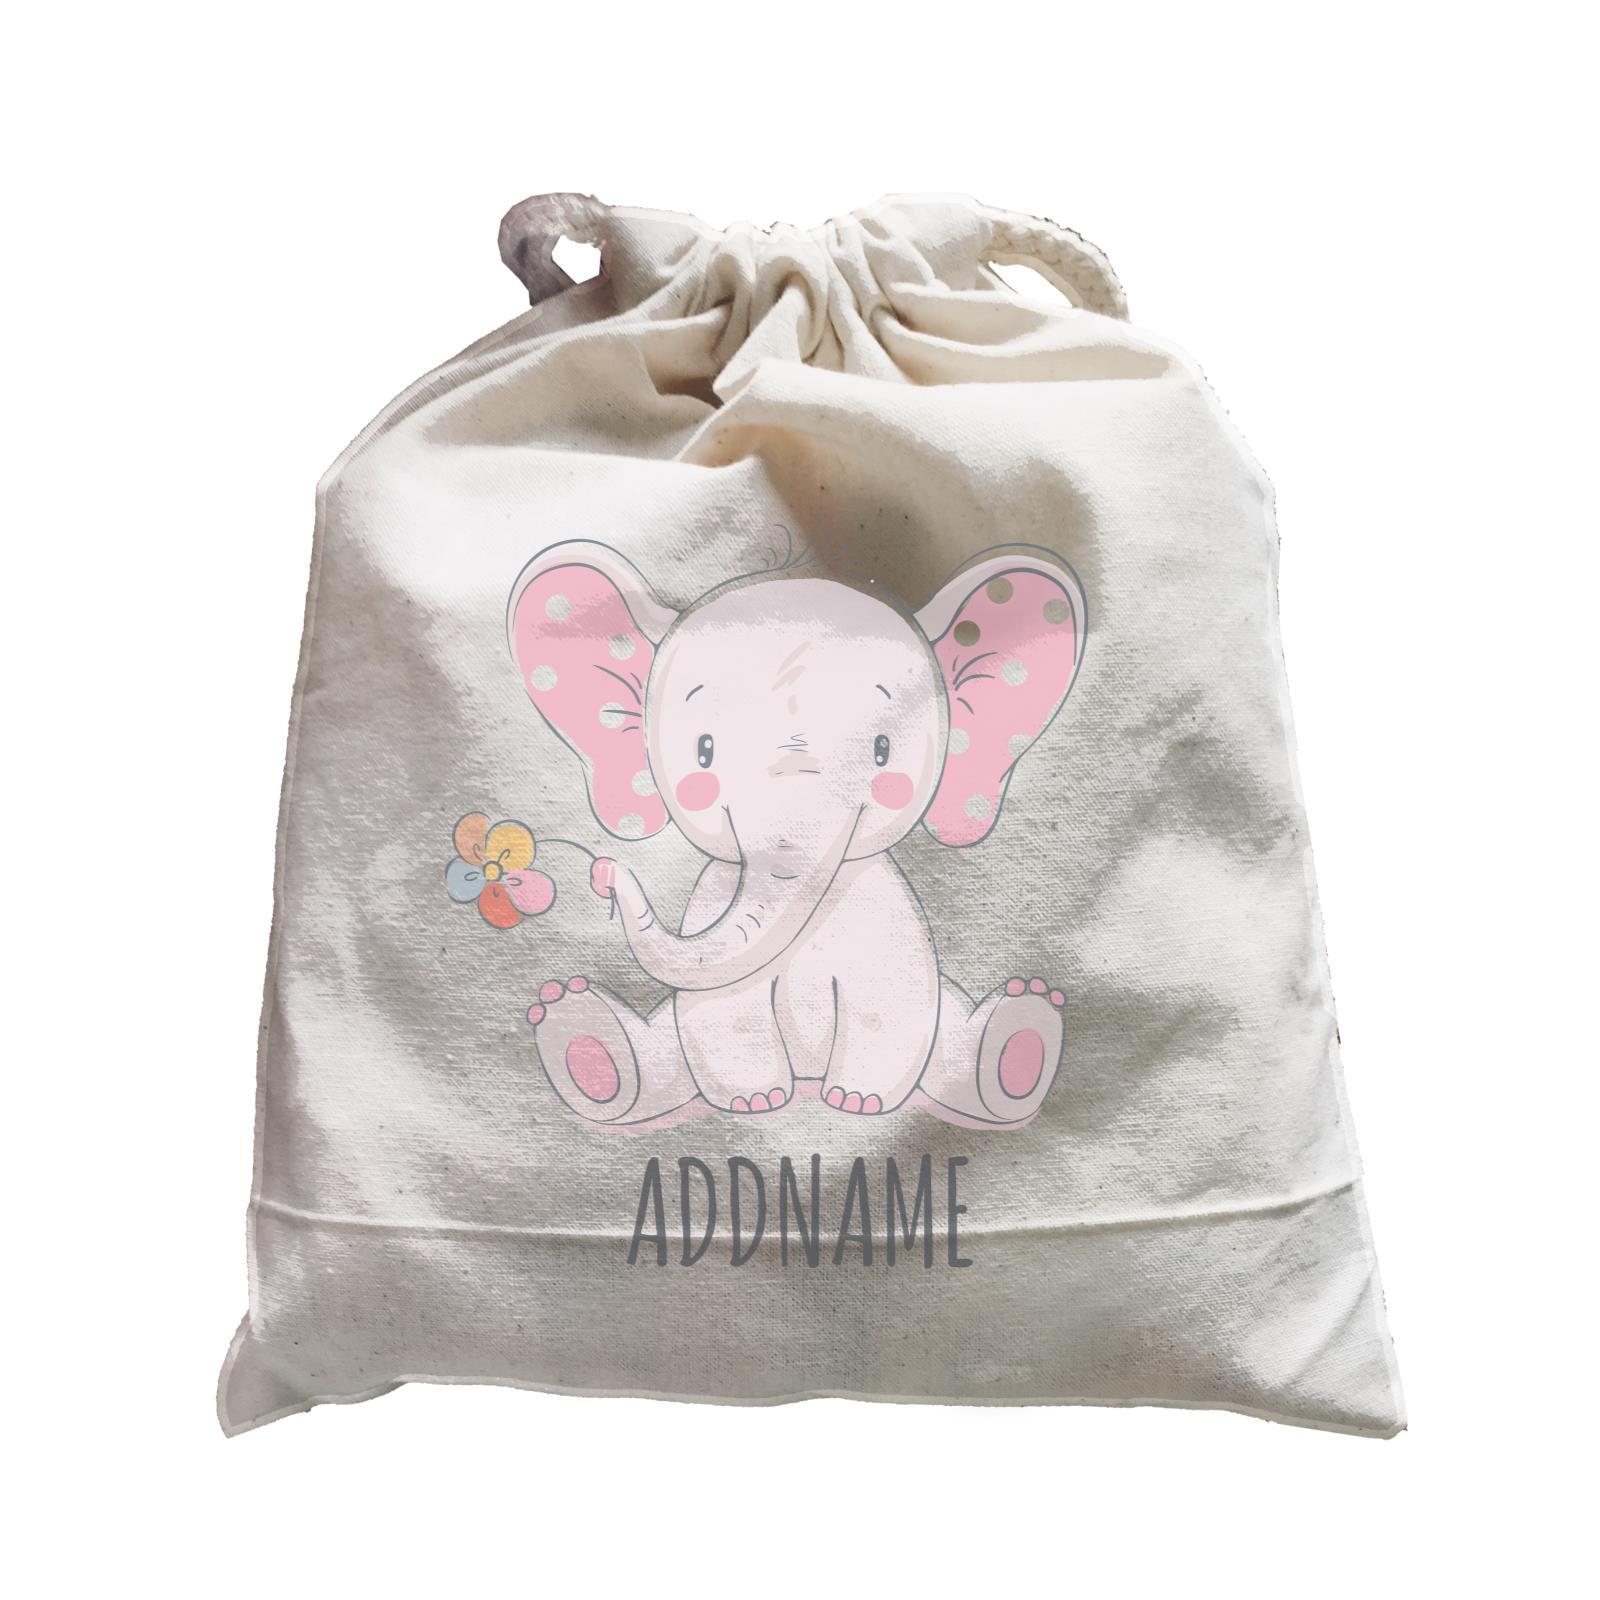 Sitting Girl Elephant with Flower Satchel Personalizable Designs Cute Sweet Animal For Girls Pinky Newborn HG